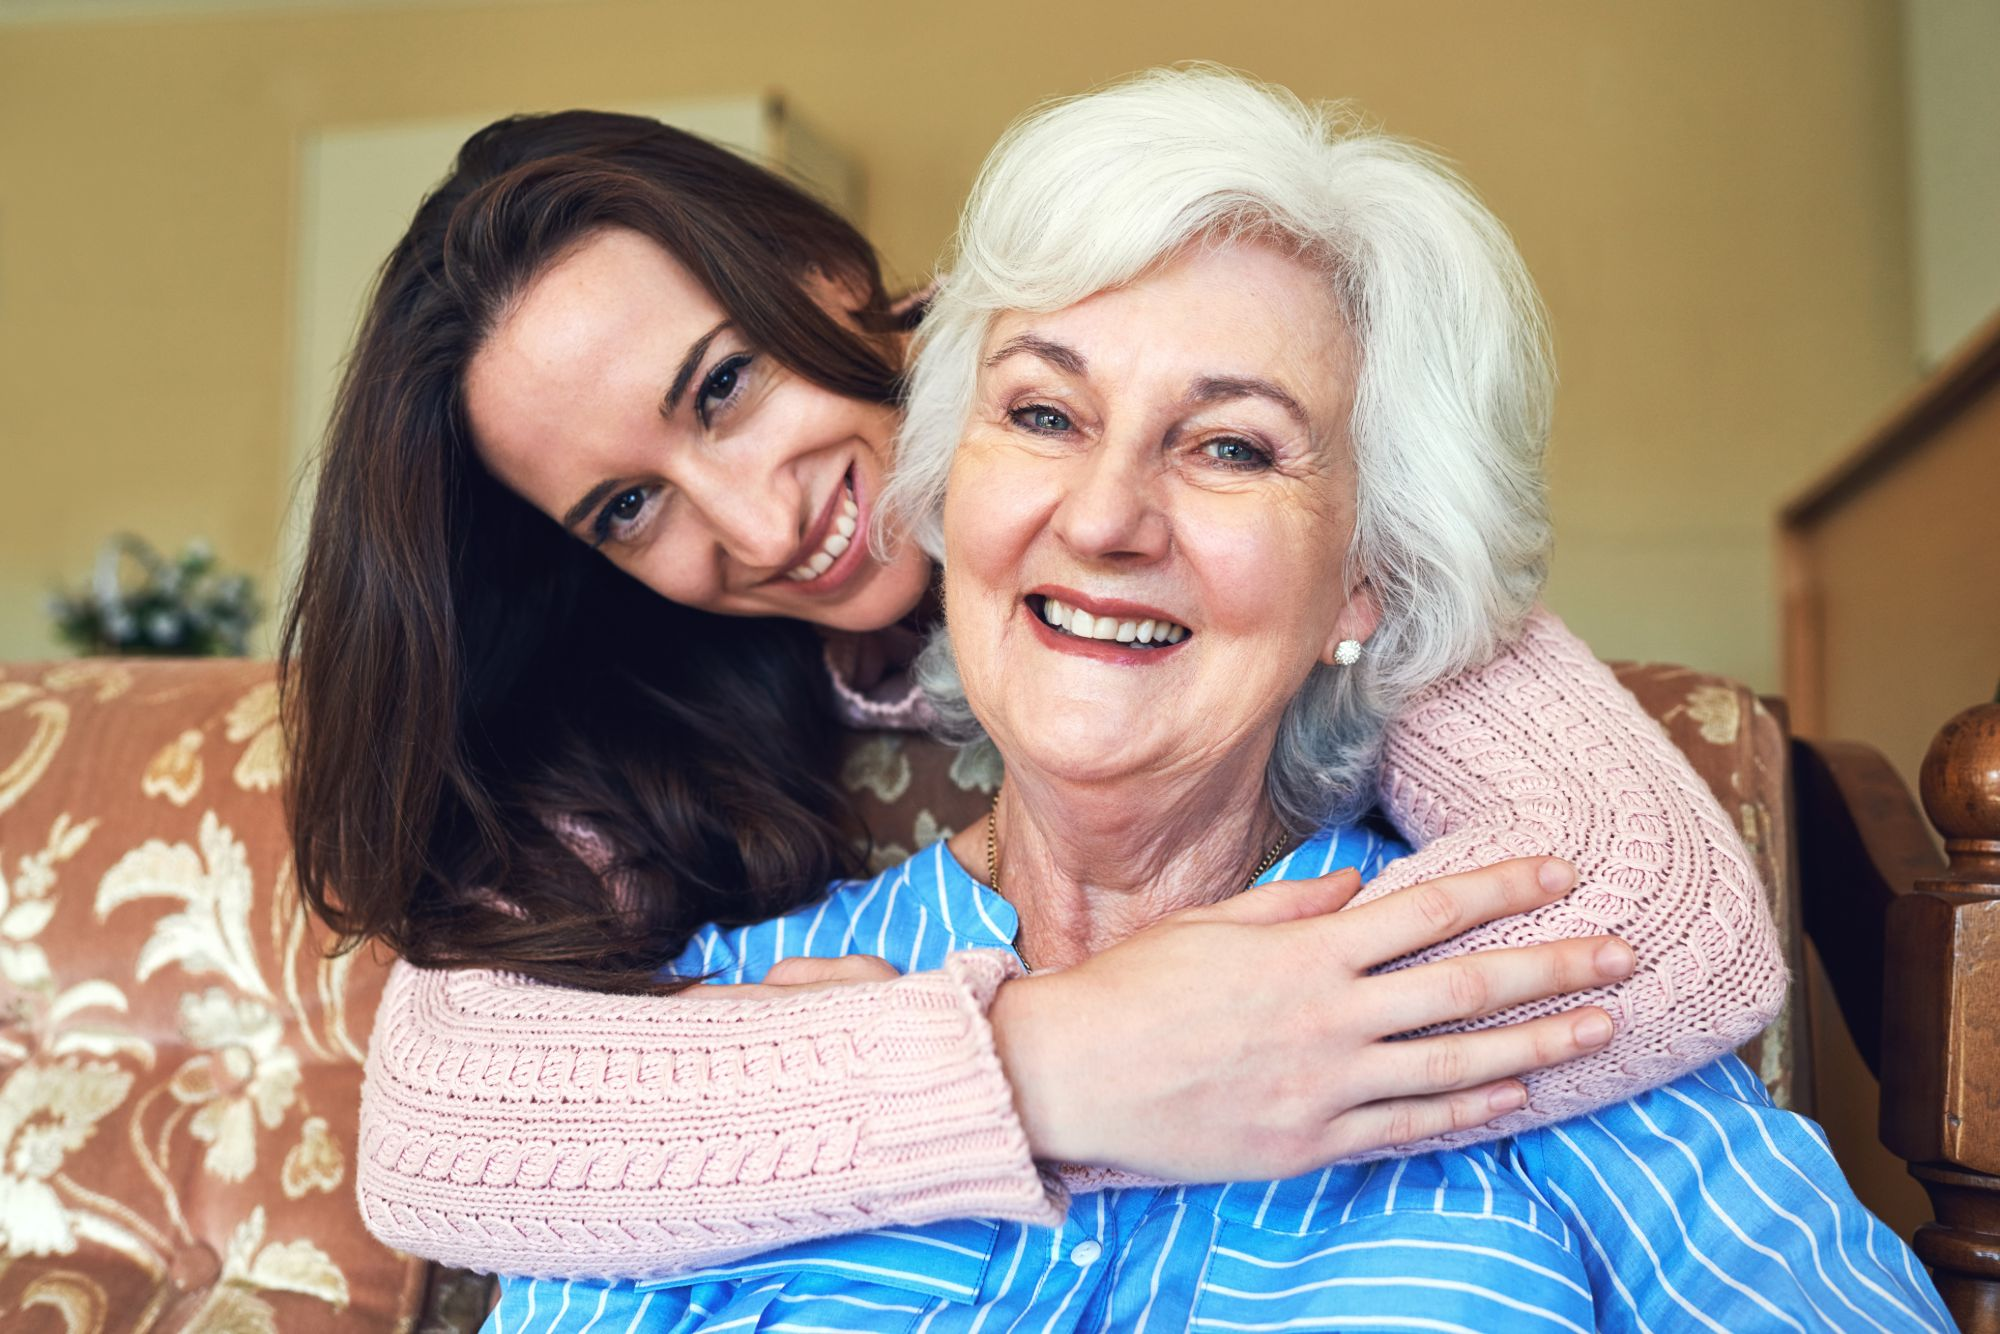 Assisted Living resident with granddaughter who is hugging her from behind